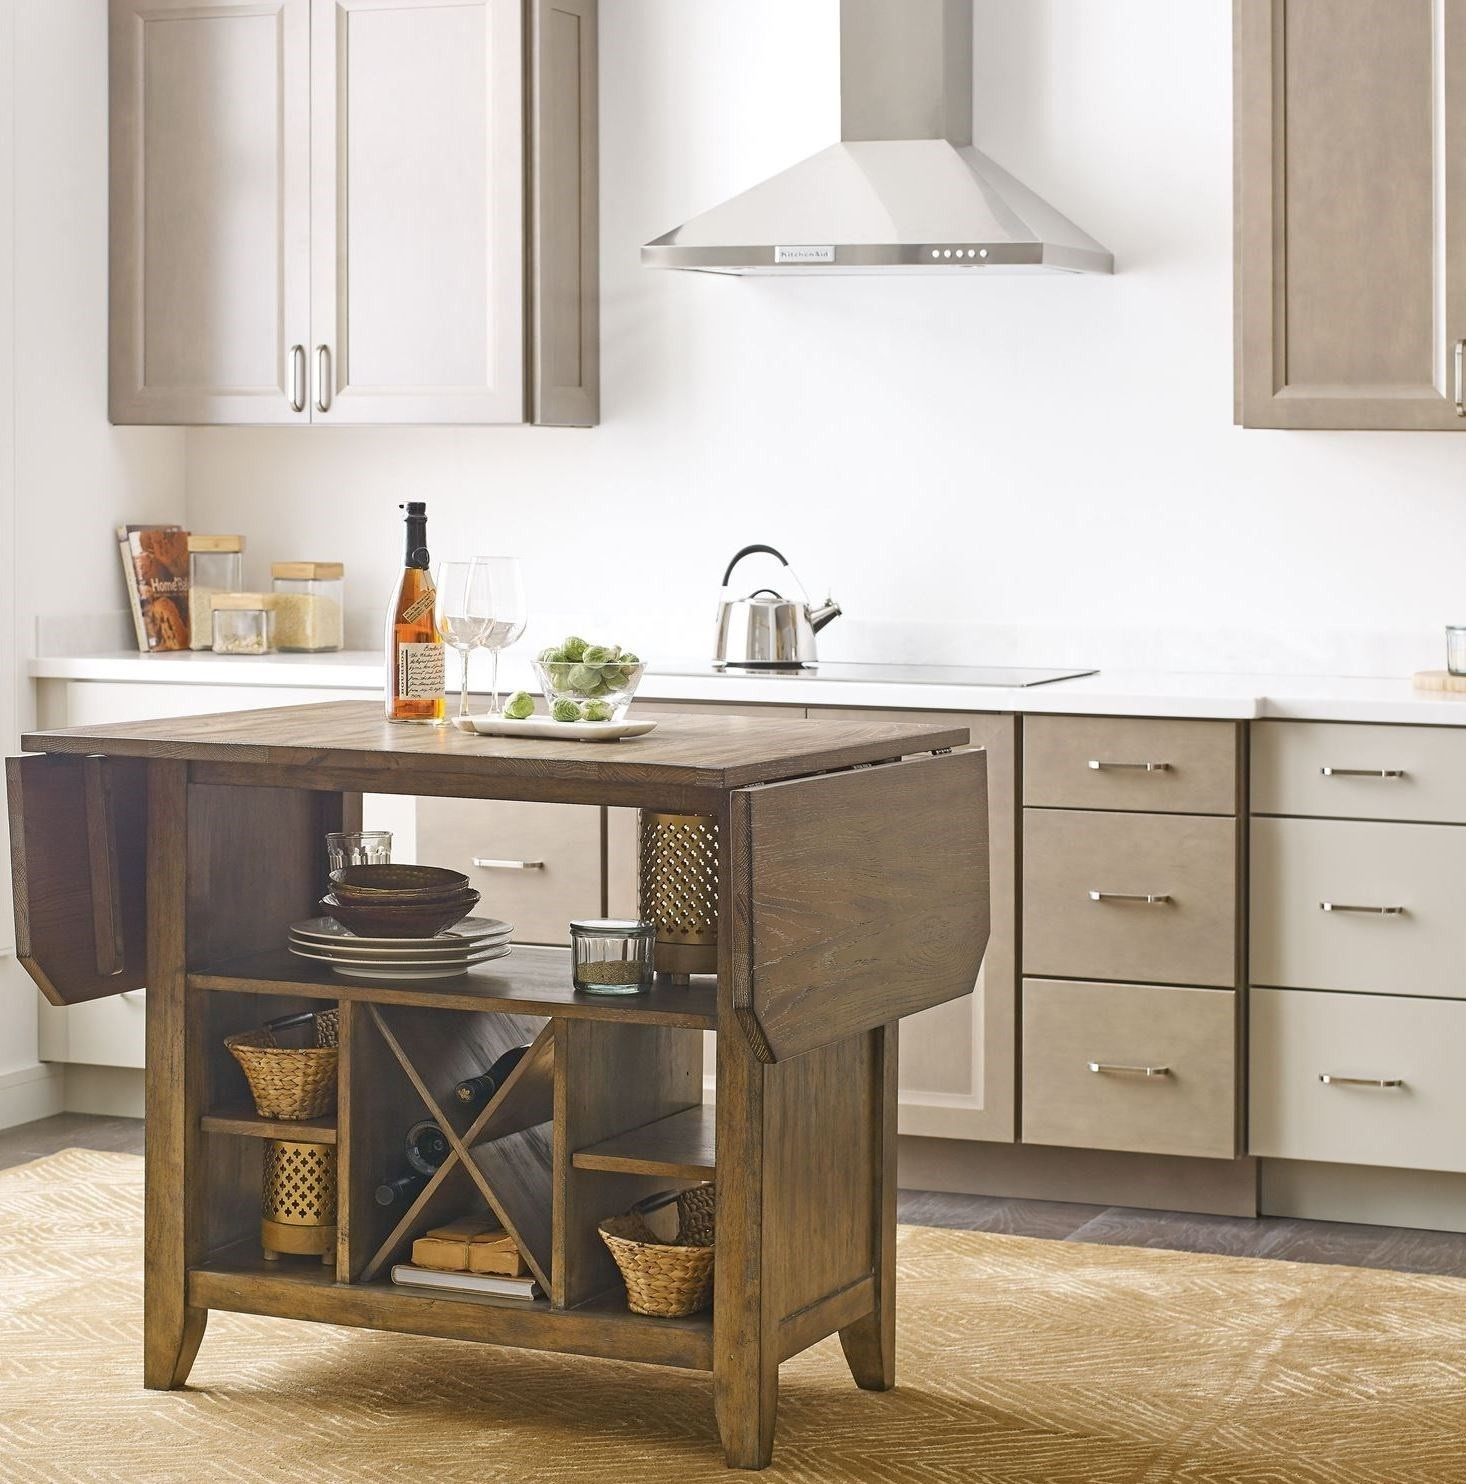 The Nook Oak Kitchen Island Set